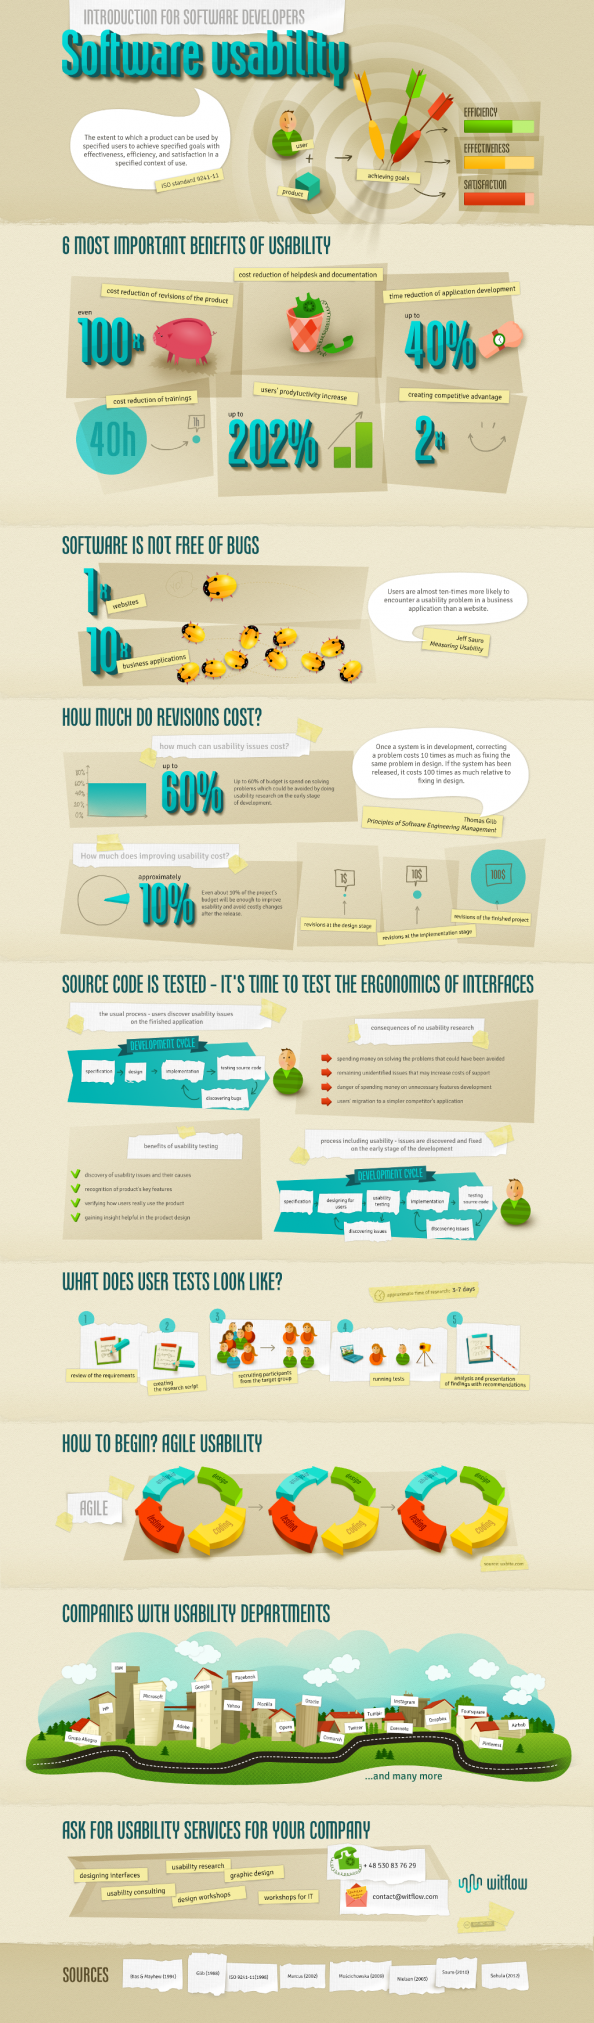 Software usability Infographic